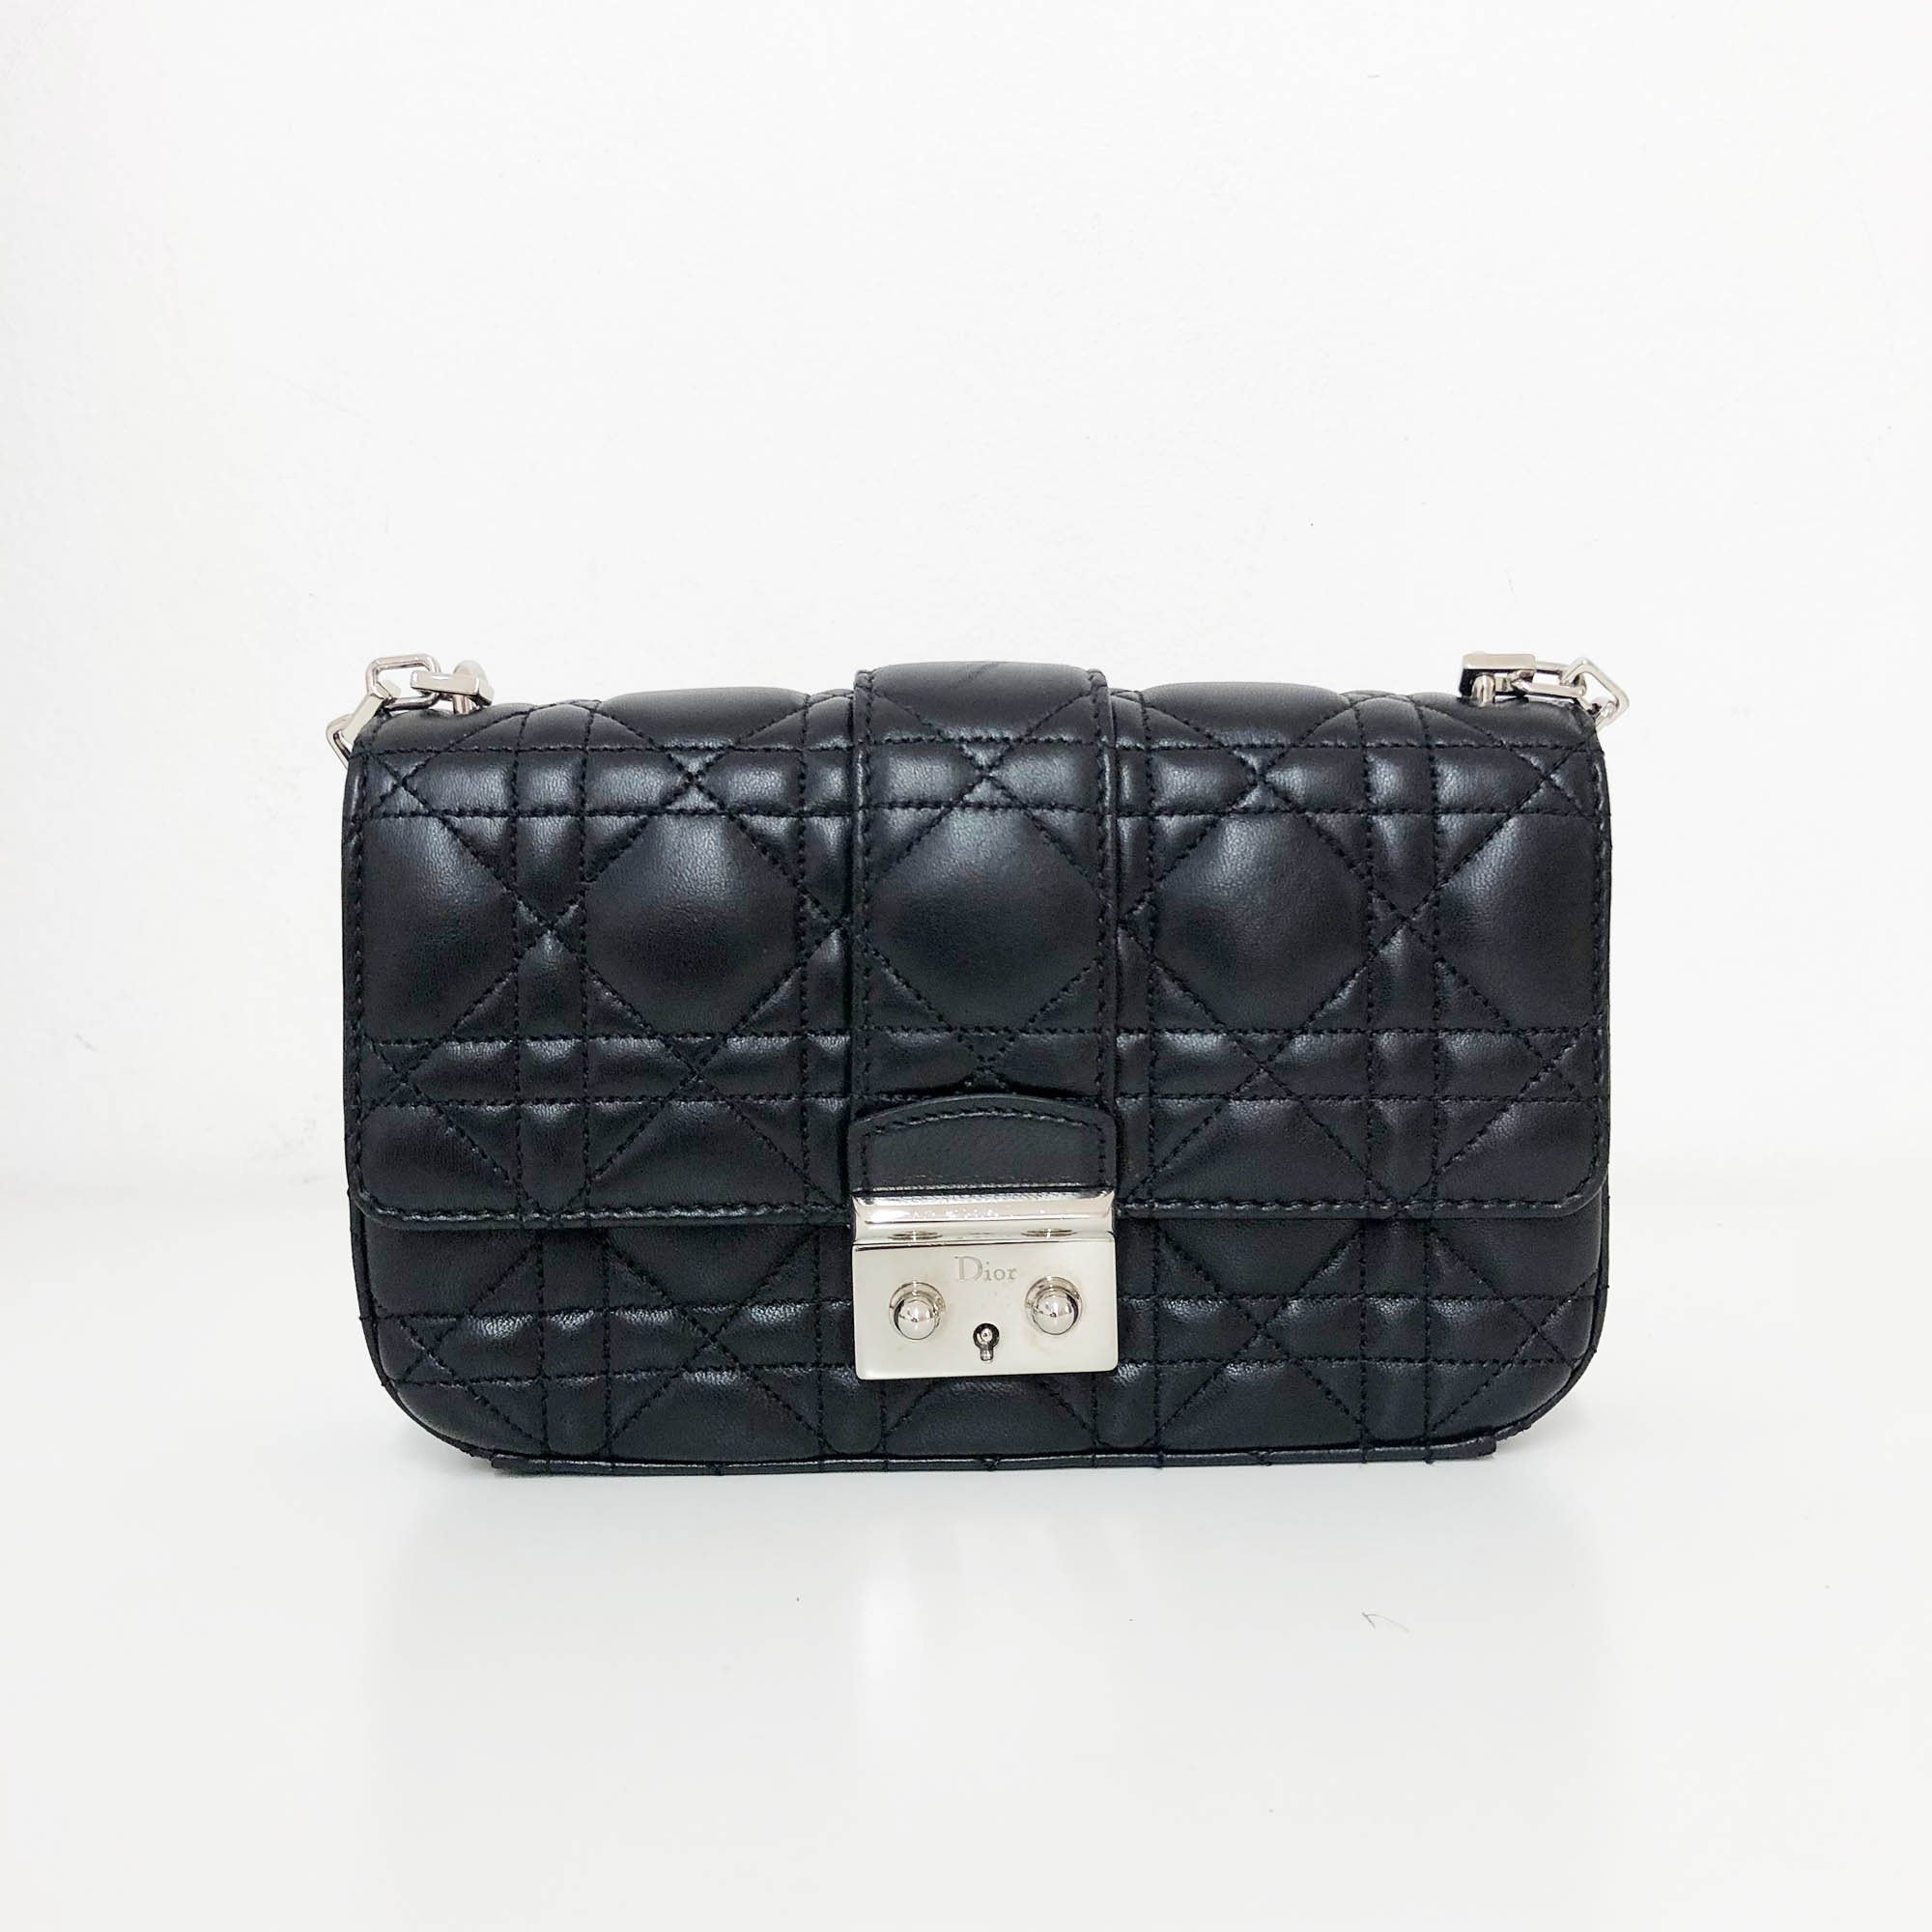 9630a836bba4 Christian Dior Small Miss Dior Black Cannage Stitch Bag – Garderobe